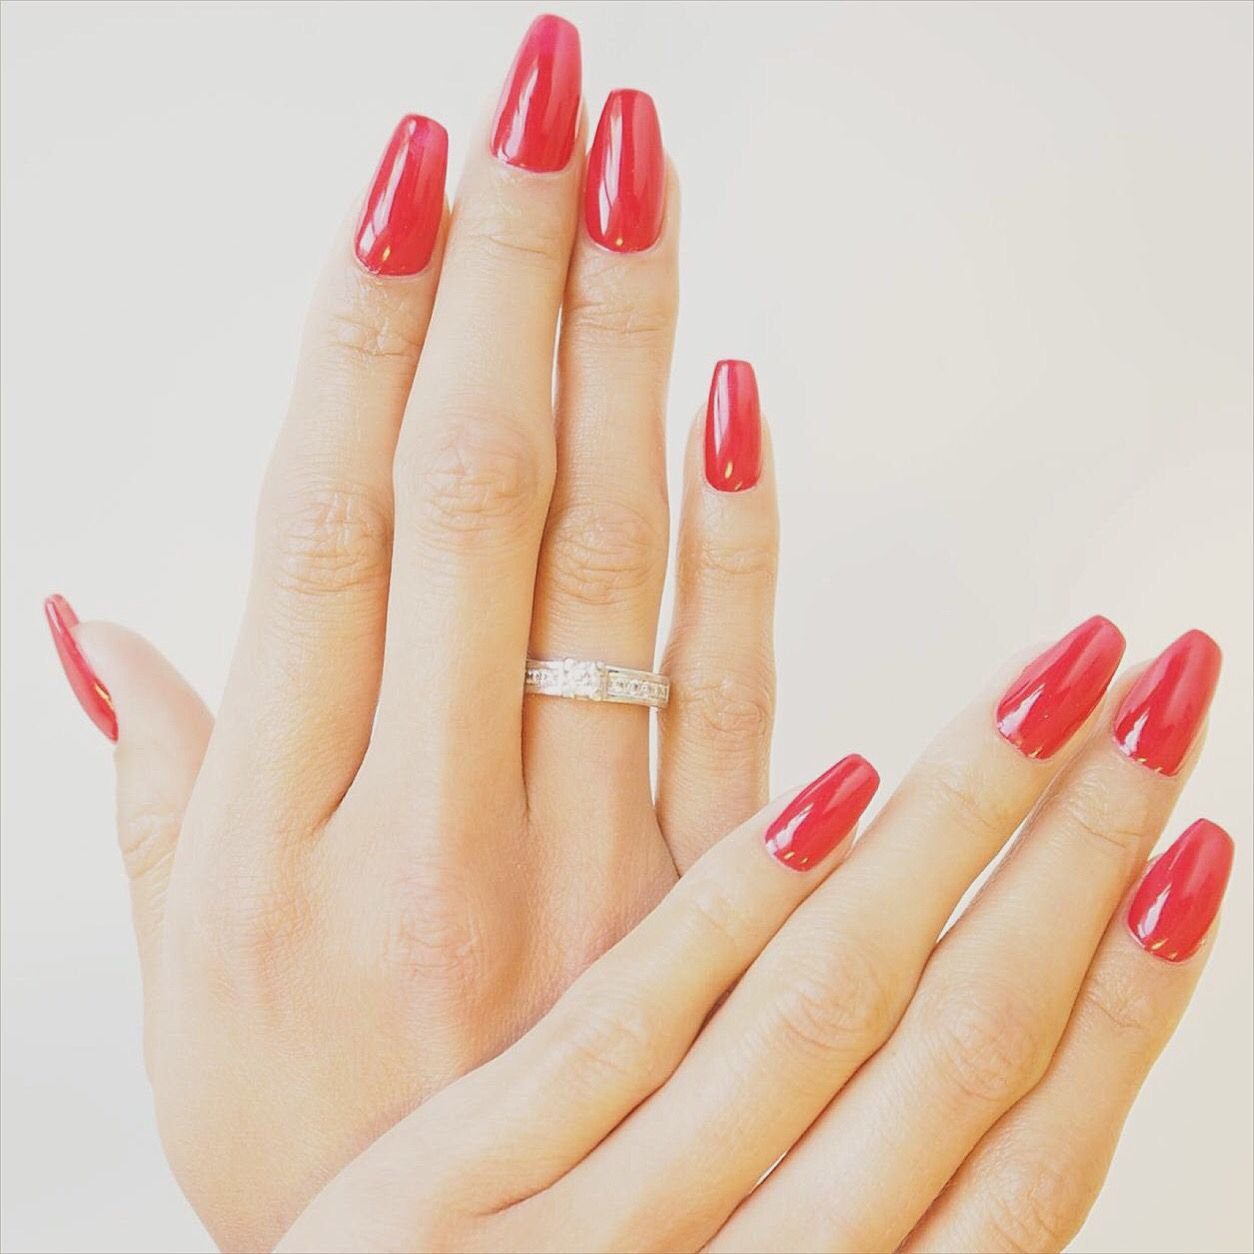 Classic red nails with Marilyn shape #marilynshape #rednails | Ronja ...